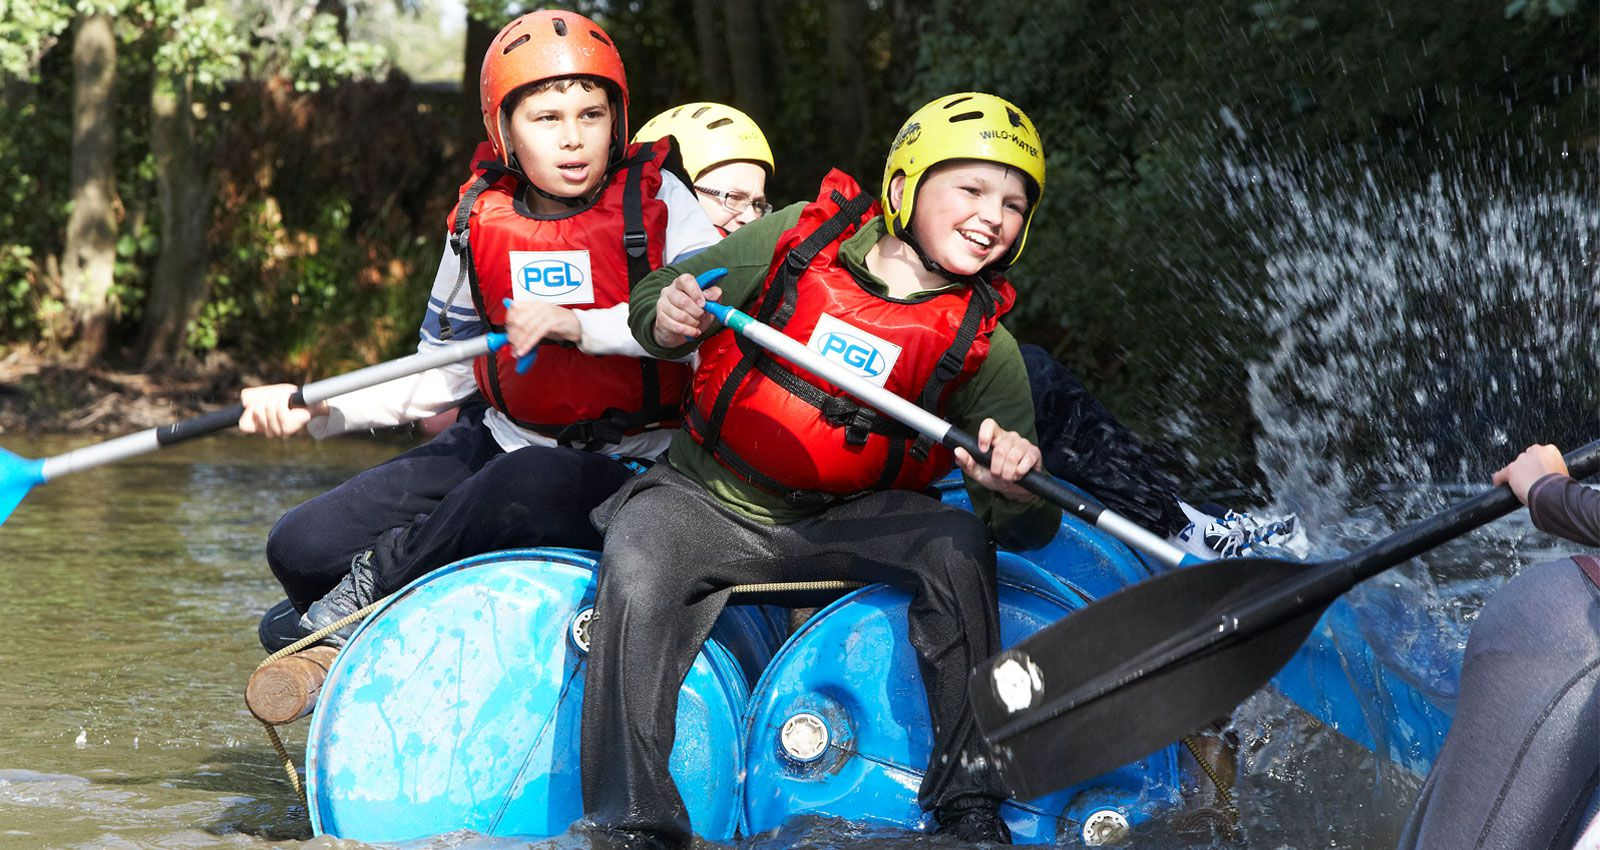 PGL Adventure Holidays - Specialist Holidays for 7-17 year olds across the UK and France - Love to Learn – Cook's Academy